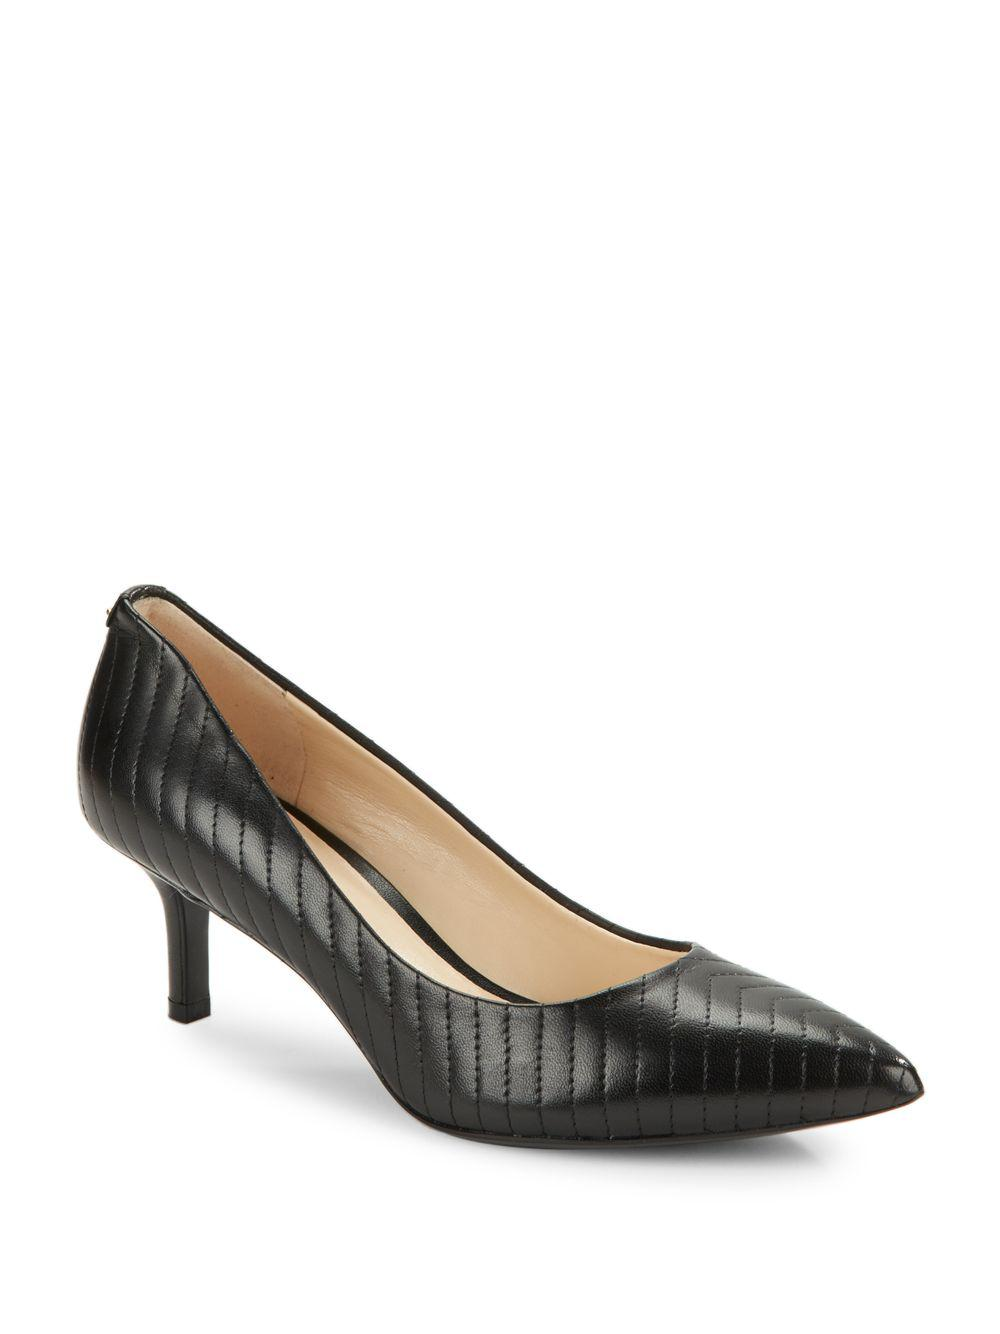 Patent leather pumps Karl Lagerfeld mgDZKhoM